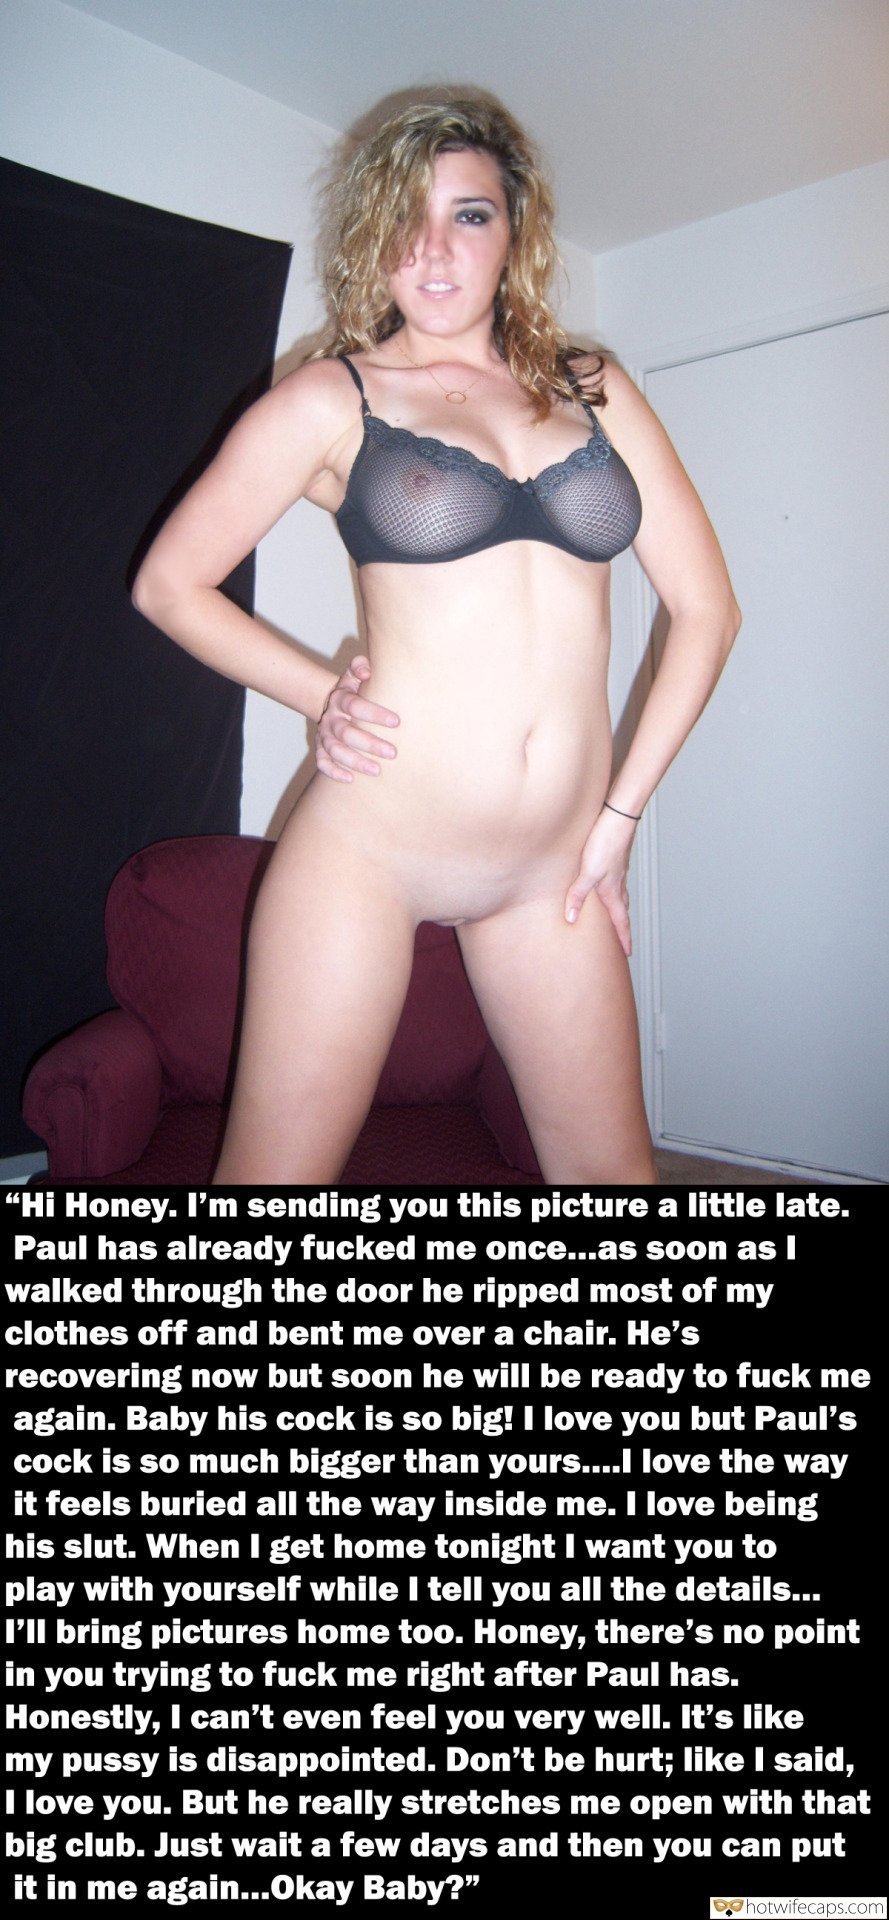 "No Panties Bigger Cock  hotwife caption: """"Hi Honey. I'm sending you this picture a little late. Paul has already fucked me once…as soon as I walked through the door he ripped most of my clothes off and bent me over a chair. He's recovering now but..."